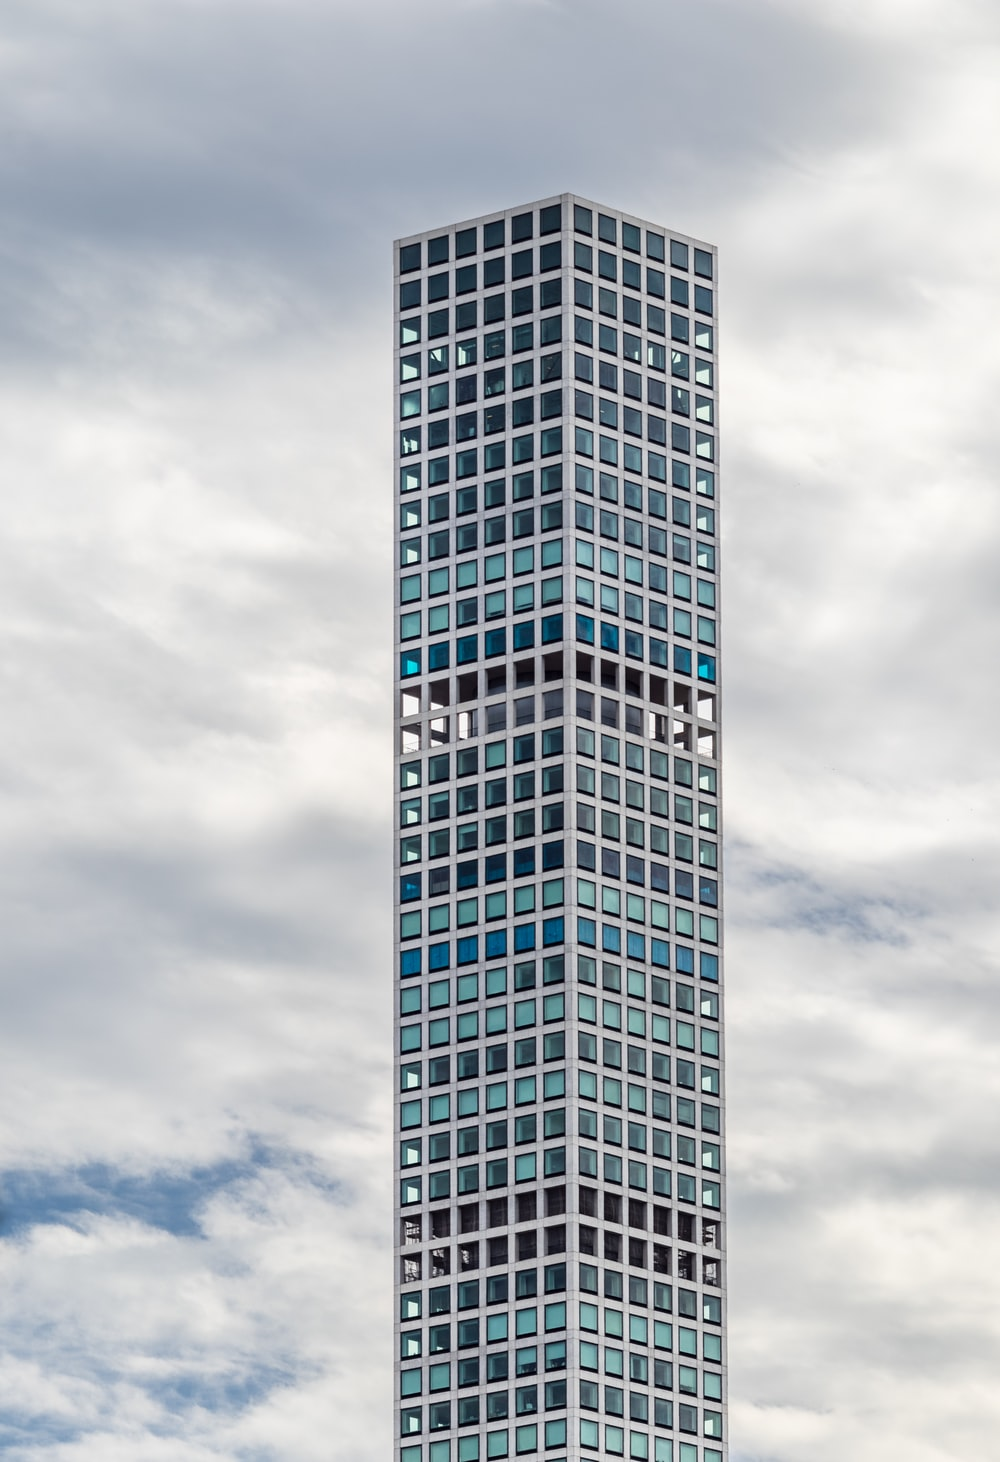 high-rise mirror building under white clouds